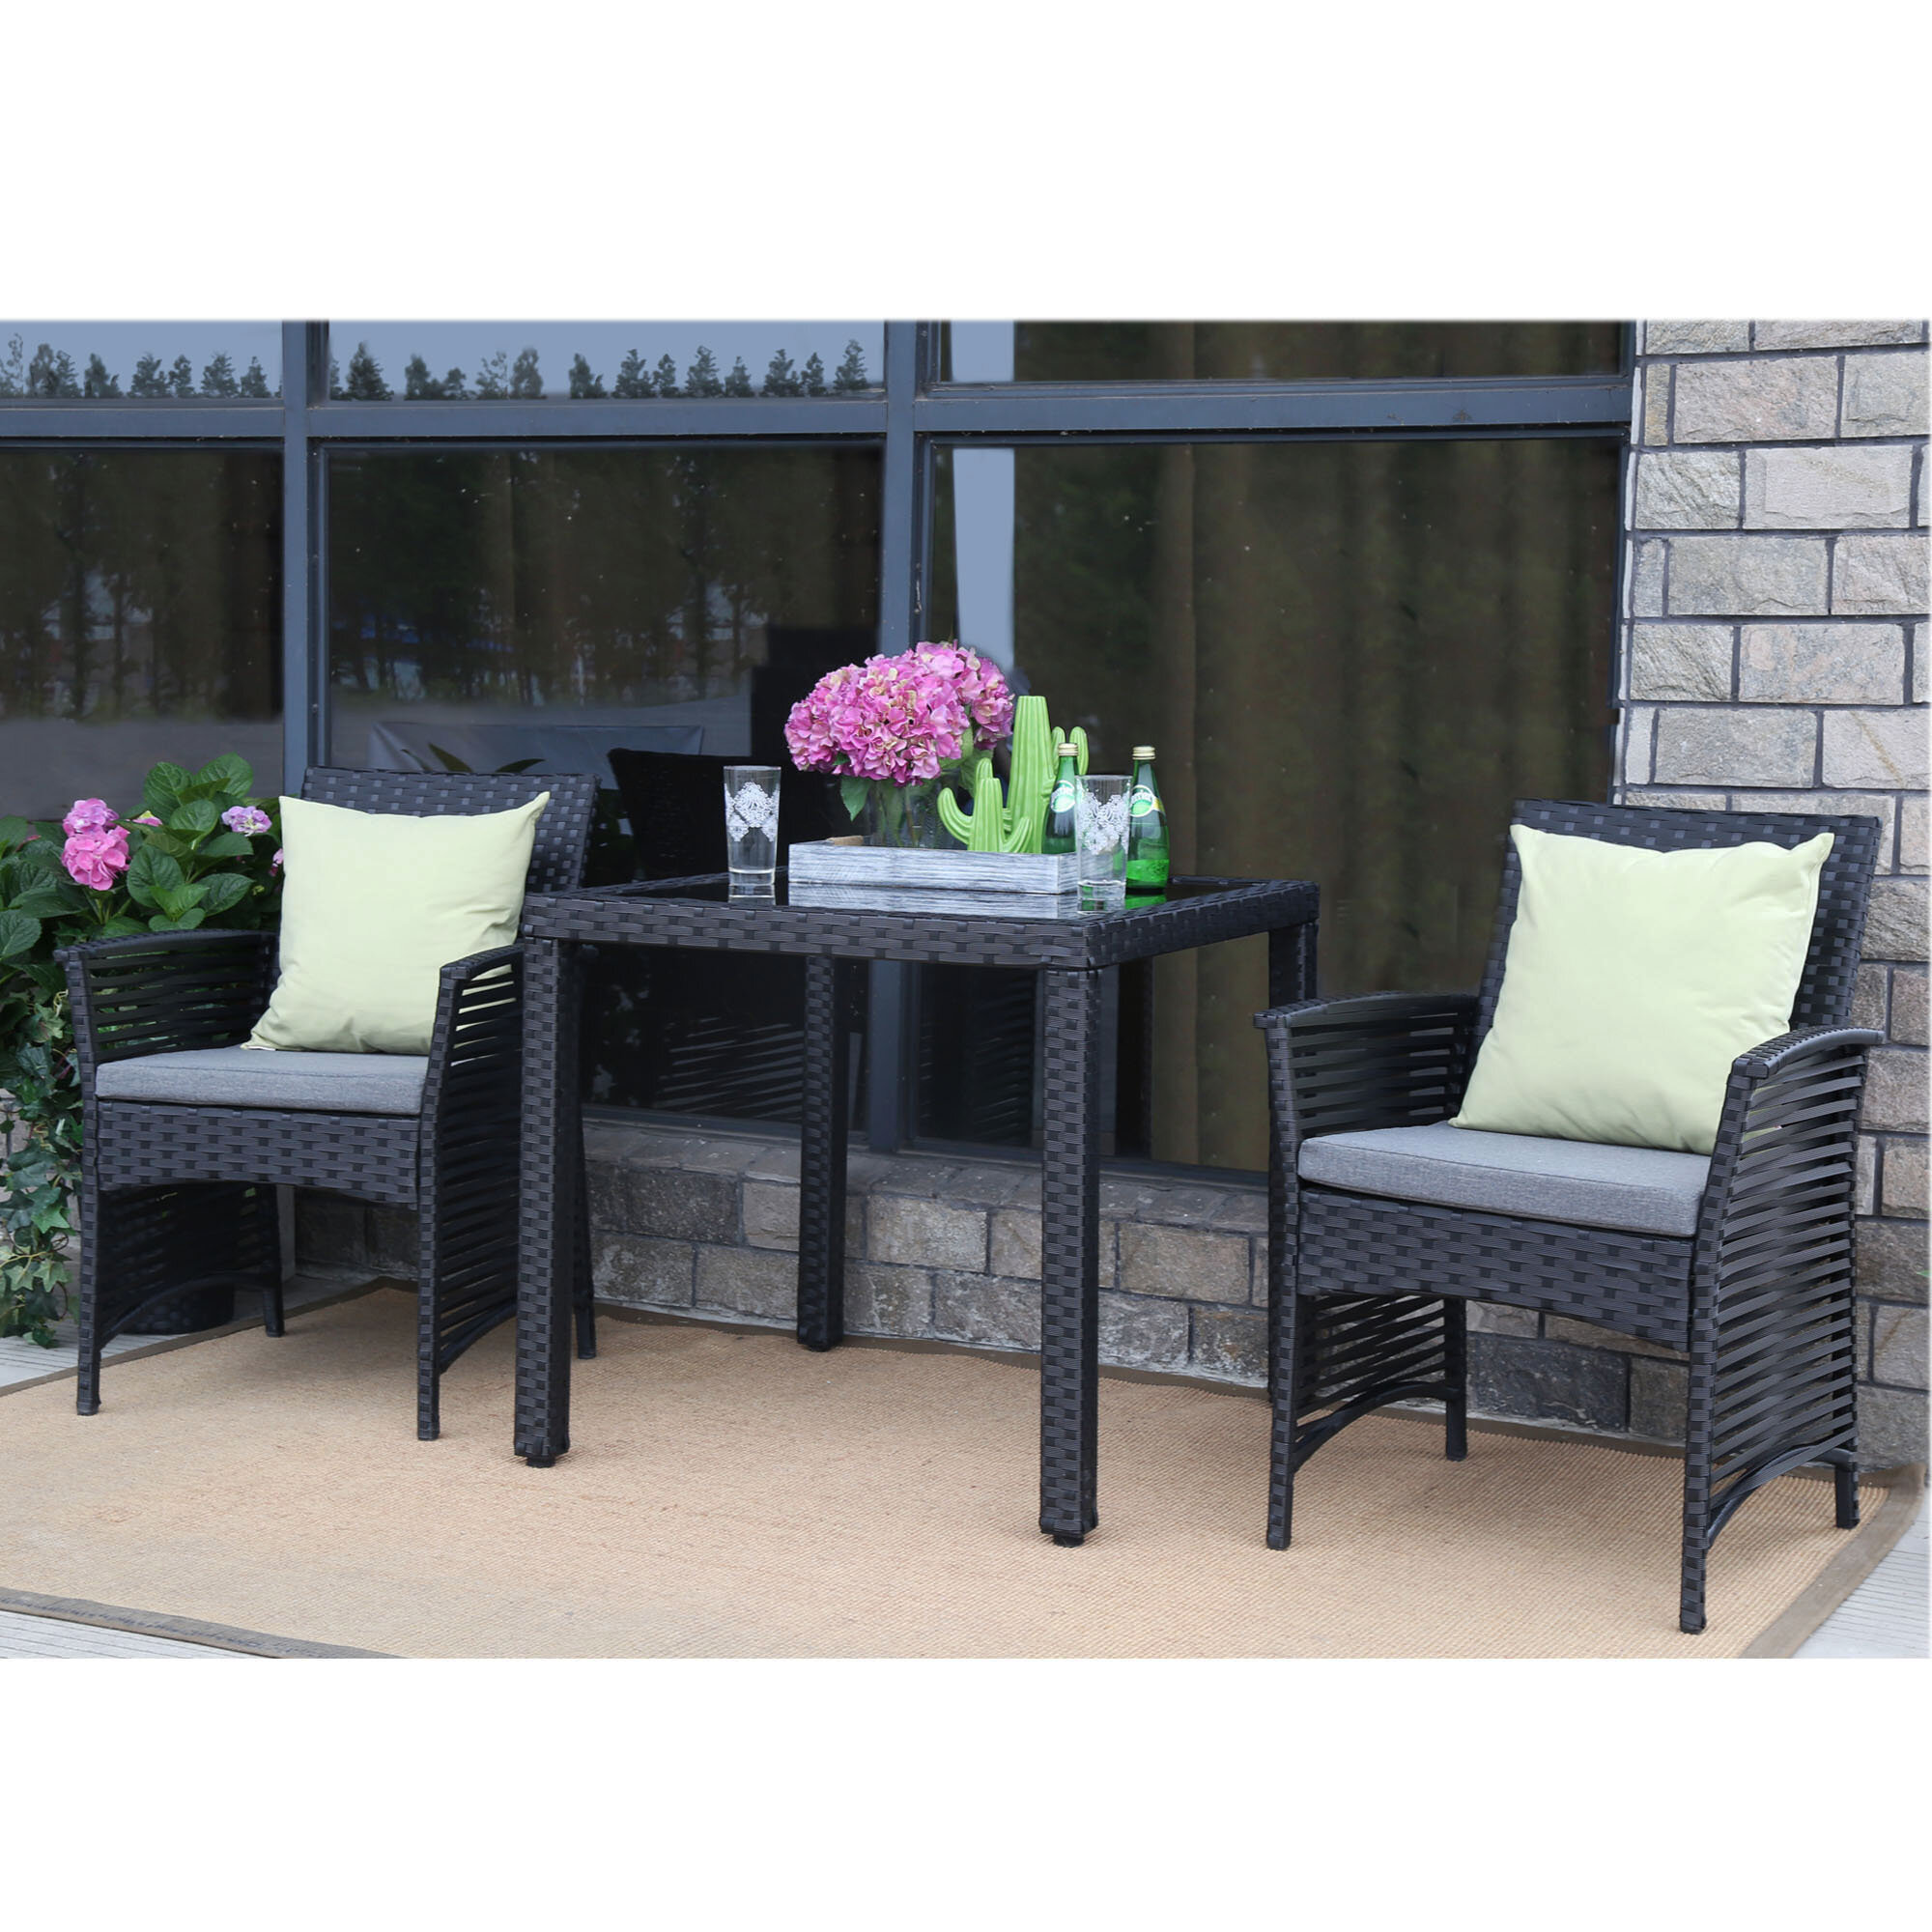 Bay isle home clover backyard steel frame 3 pieces dining set with cushions wayfair